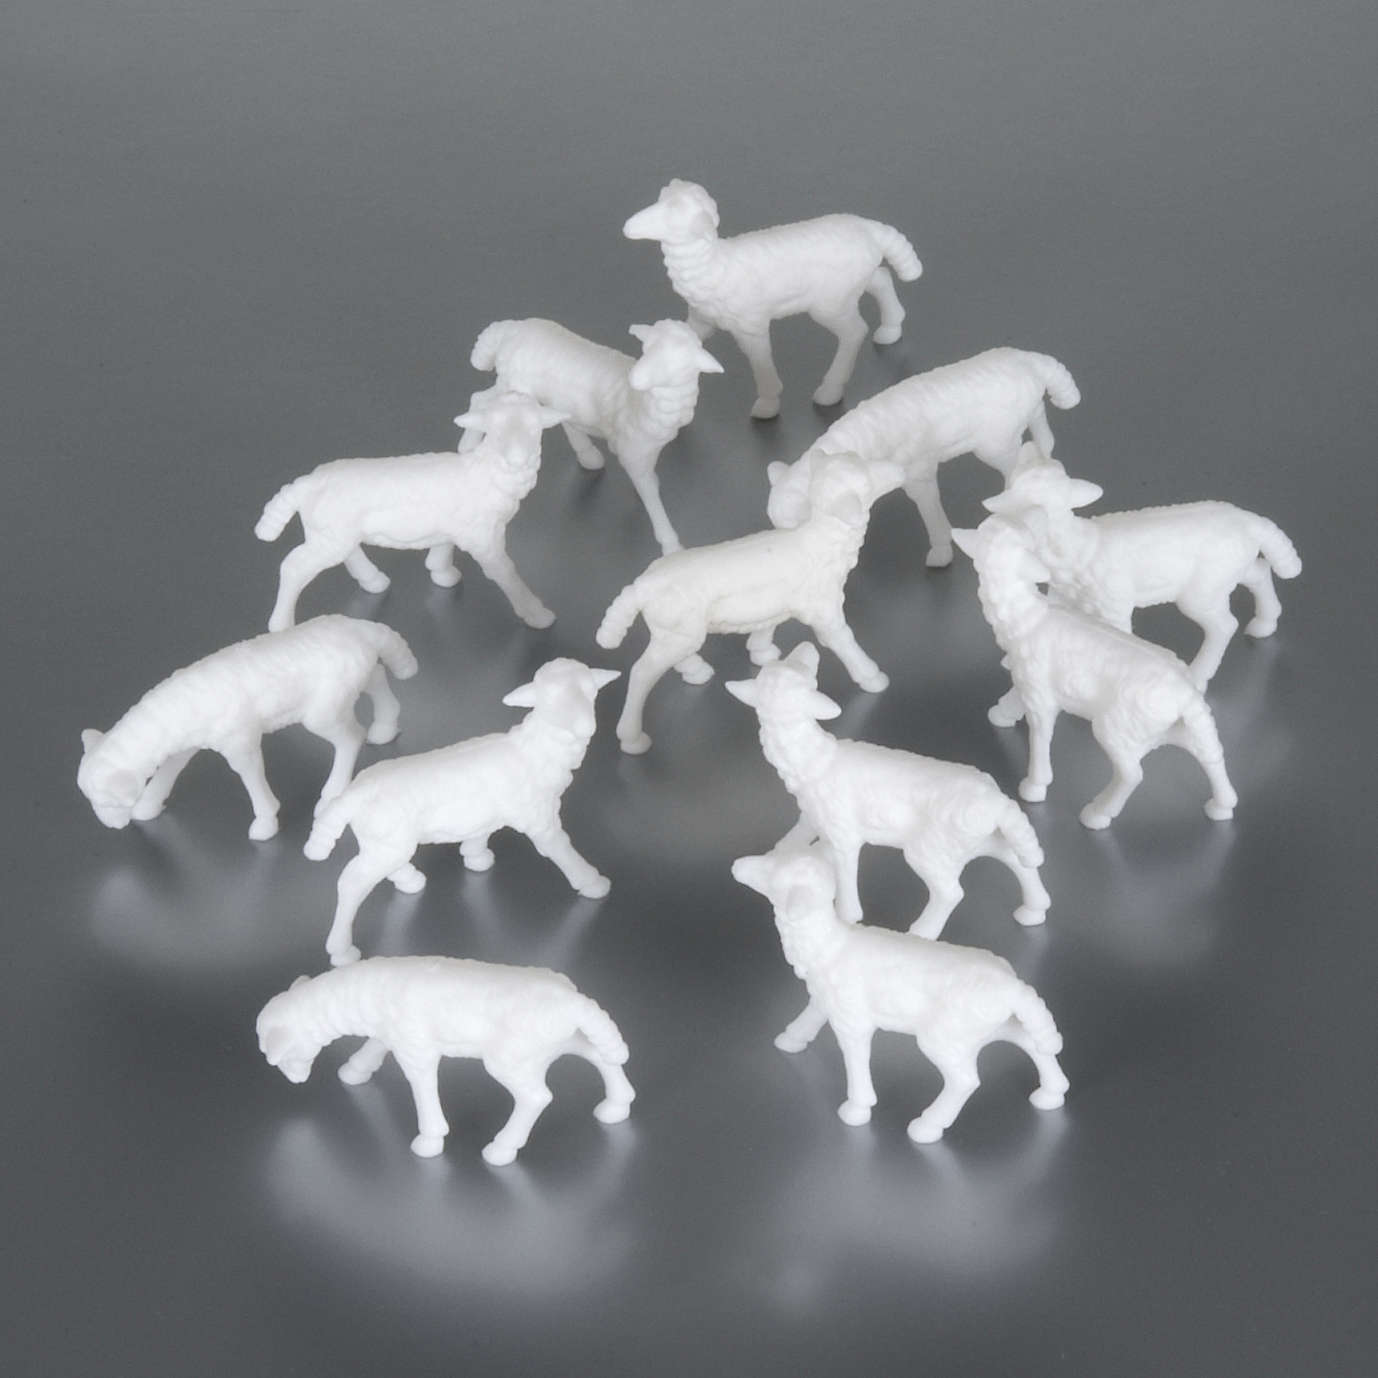 Sheep cm 8-10, 12 pcs set nativity figurines 3